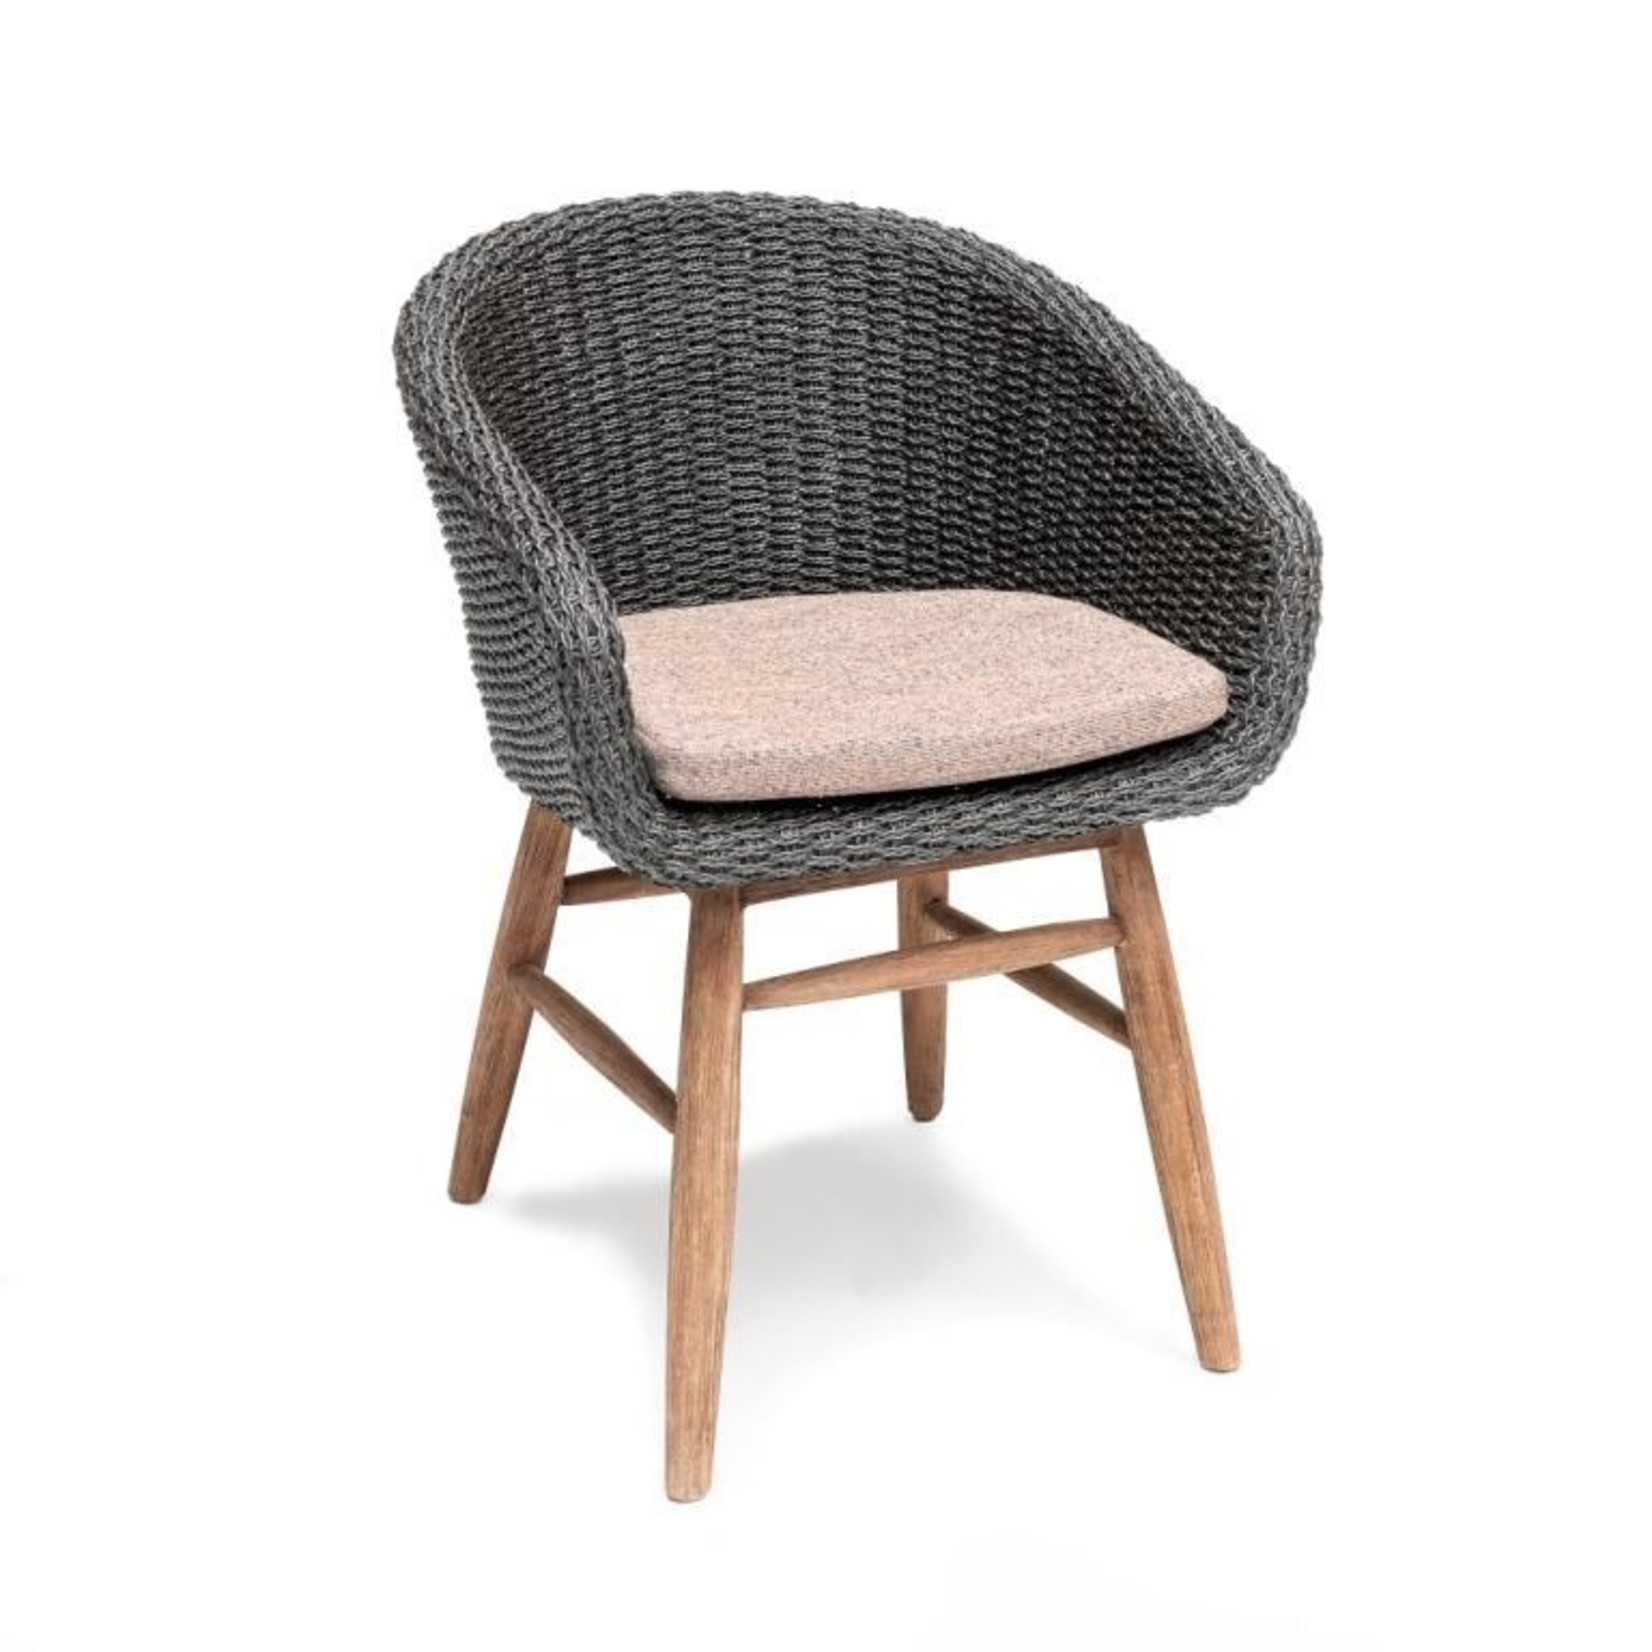 Gommaire Armchair Charly | Reclaimed Teak Natural Gray / PE Wicker Espresso